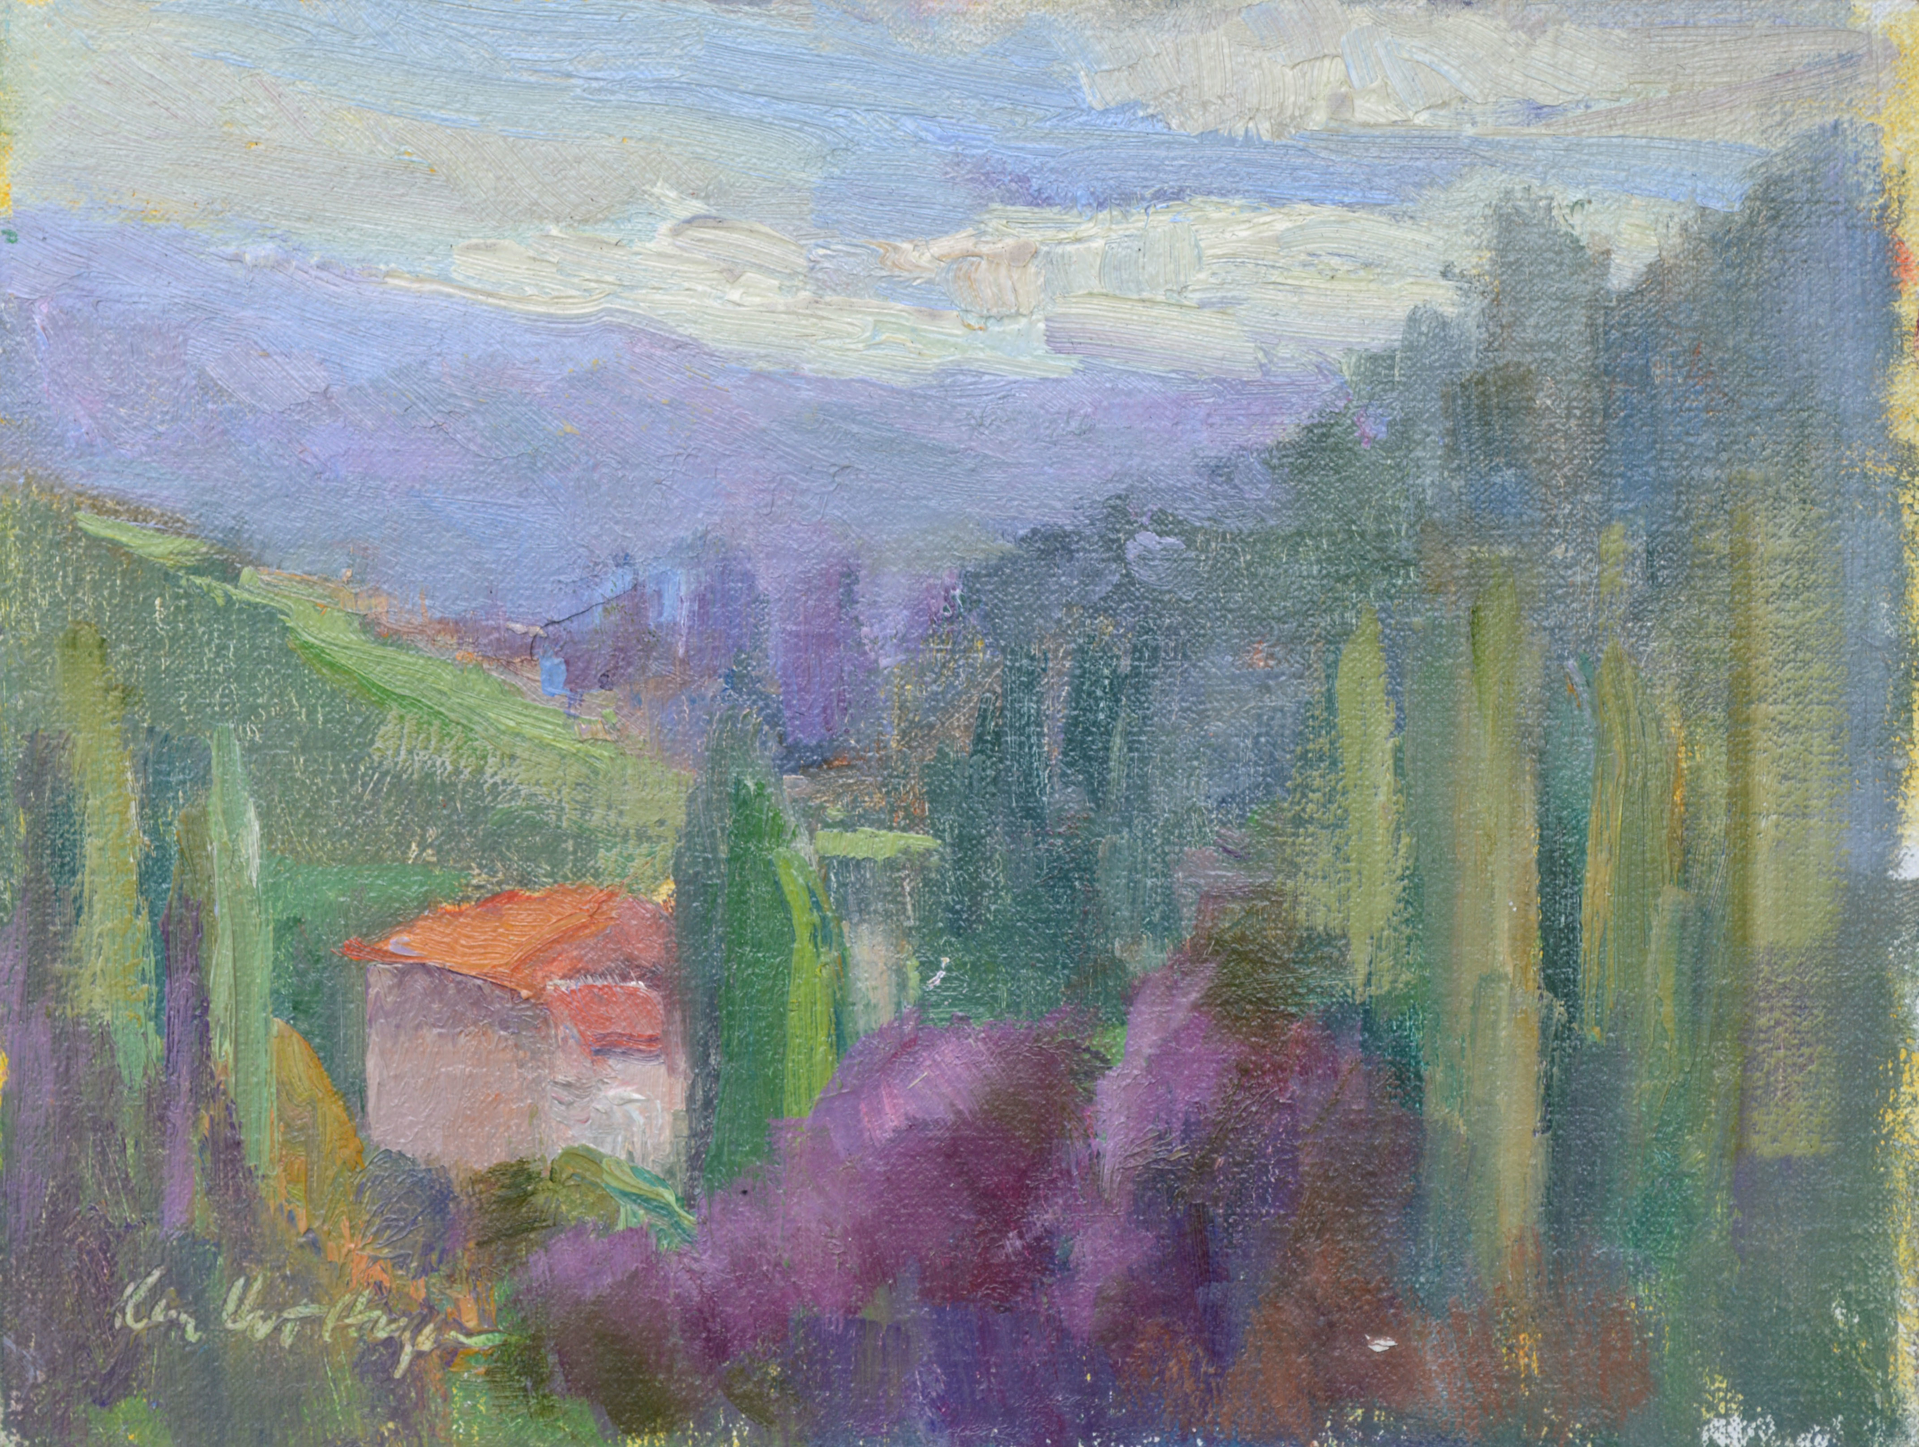 Afternoon in the South of France by Karen Hewitt Hagan